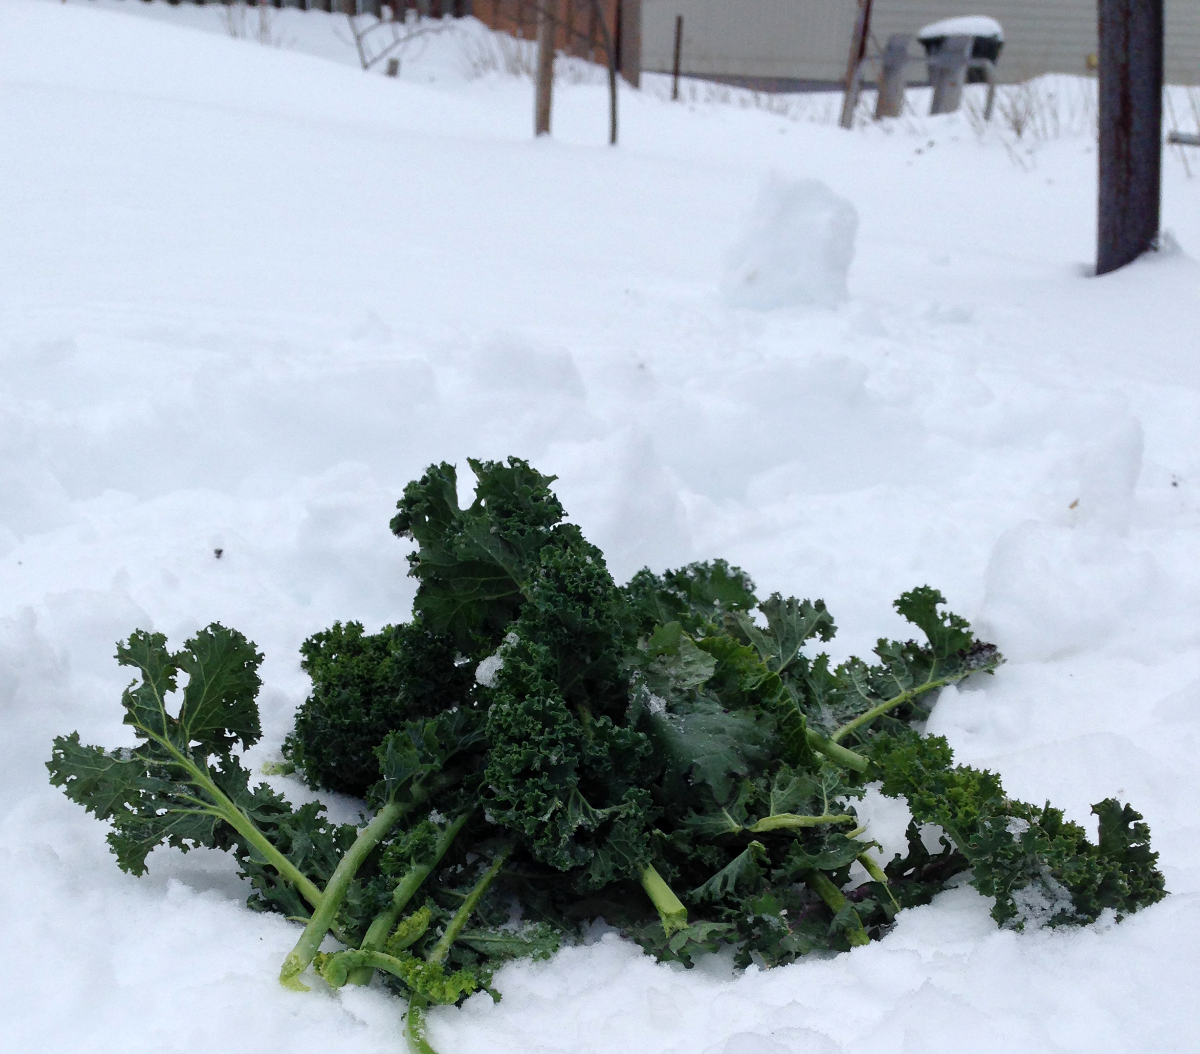 Kale in winter. (Photo by Madeline Yakimchuk)